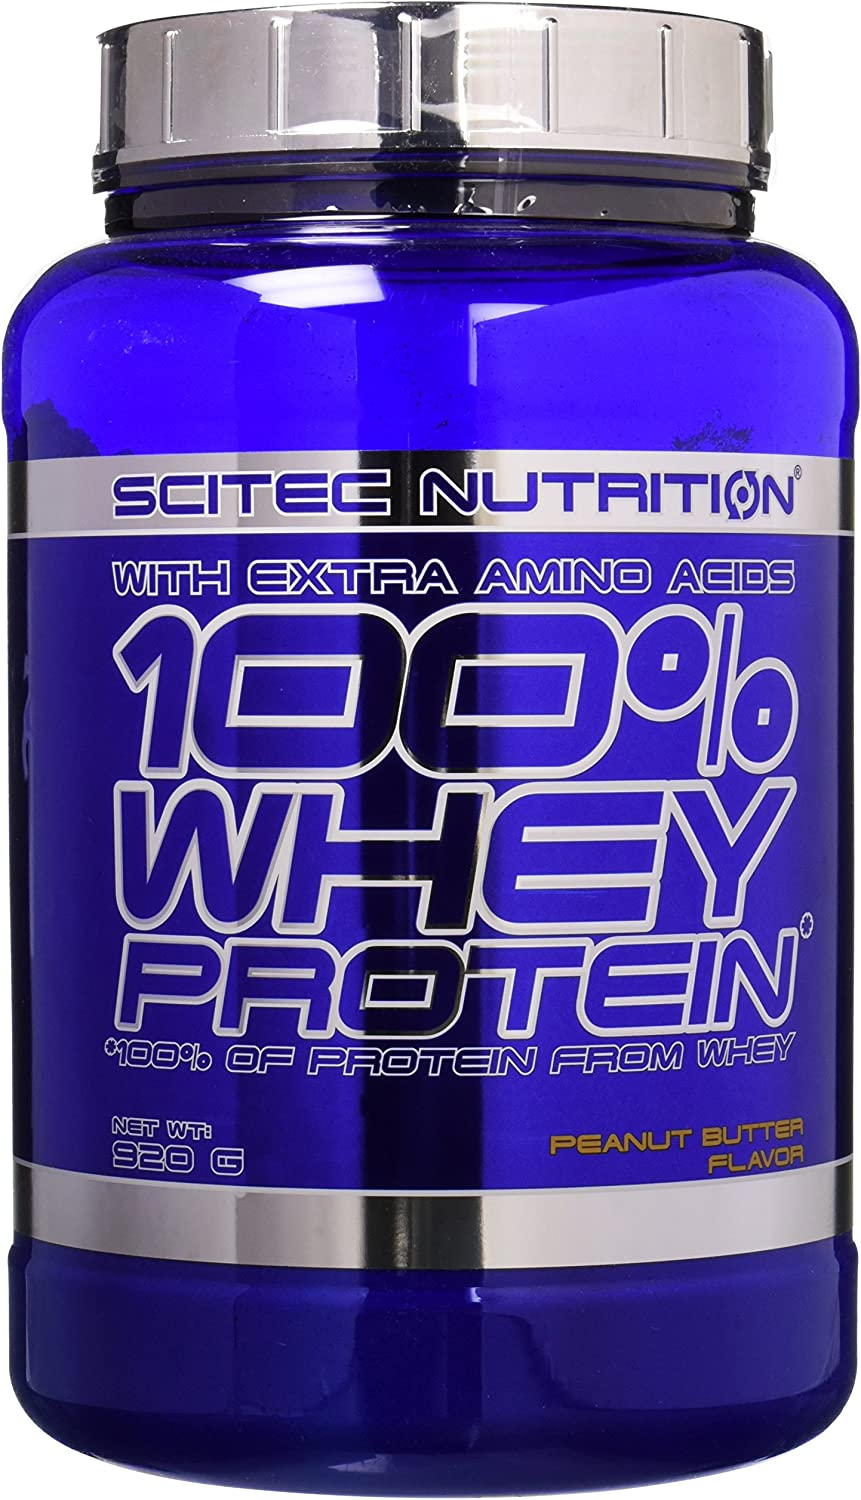 Price reduction 100% whey Our shop OFFers the best service Protein - 2 Scitec Peanut lbs nutrition Butter